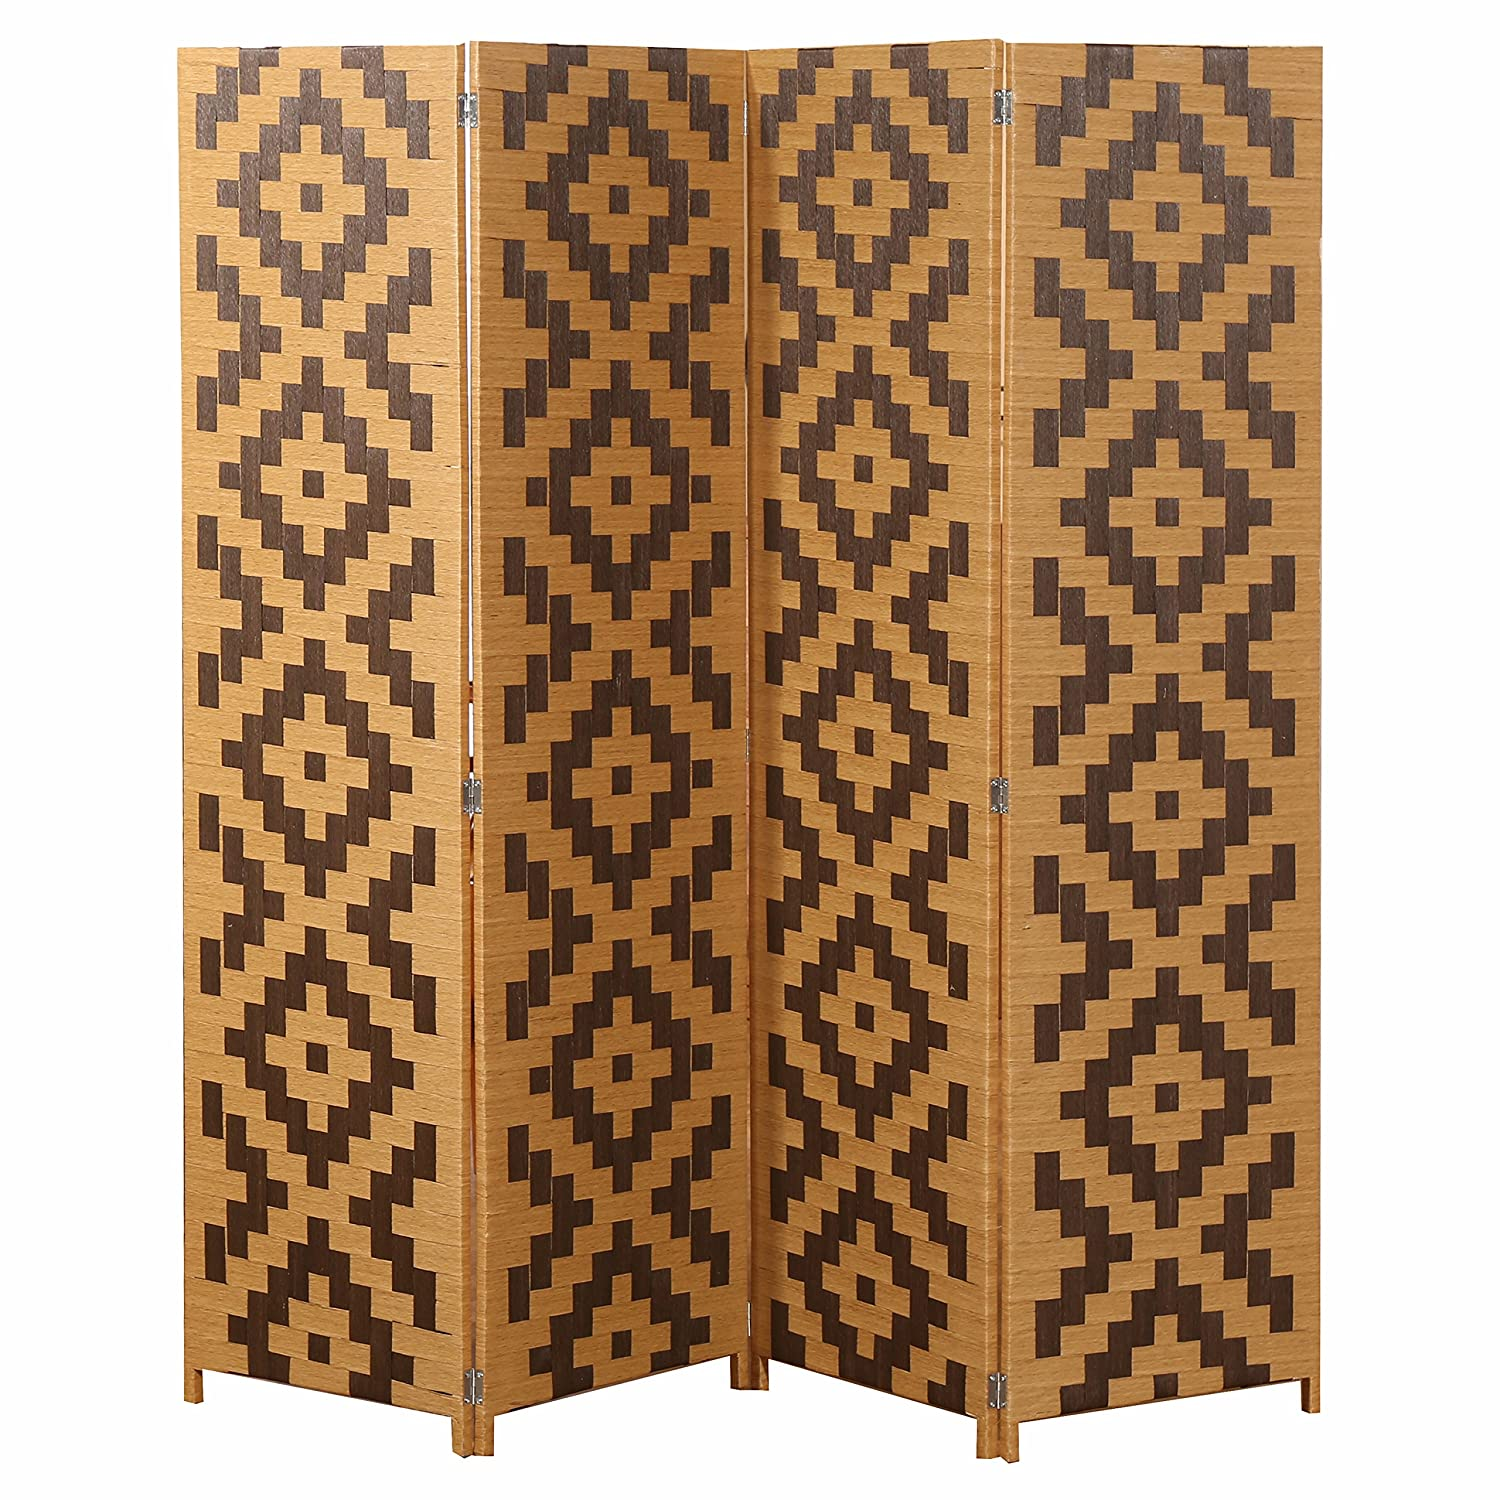 MyGift Woven Rattan 4 Panel Screen, Southwest Folding Room Divider, Beige - Room Dividers Amazon.com